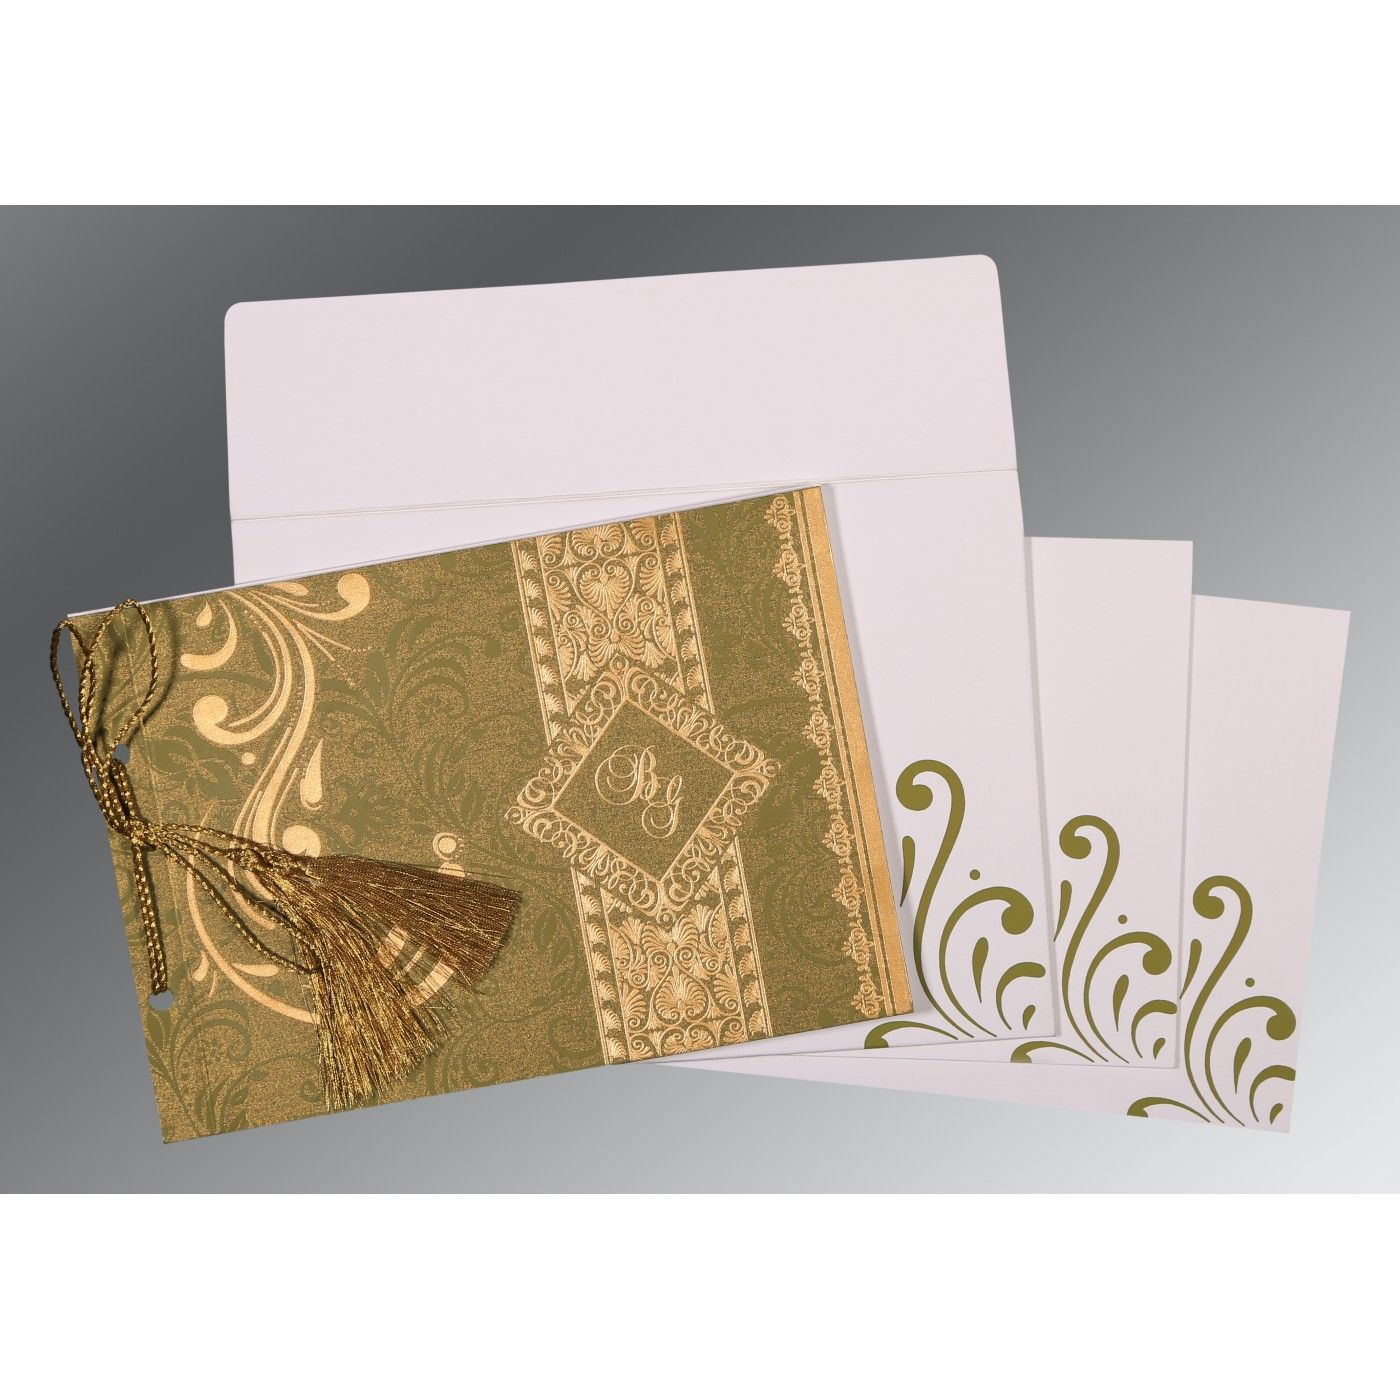 OLIVE GREEN SHIMMERY SCREEN PRINTED WEDDING CARD : CRU-8223I - IndianWeddingCards